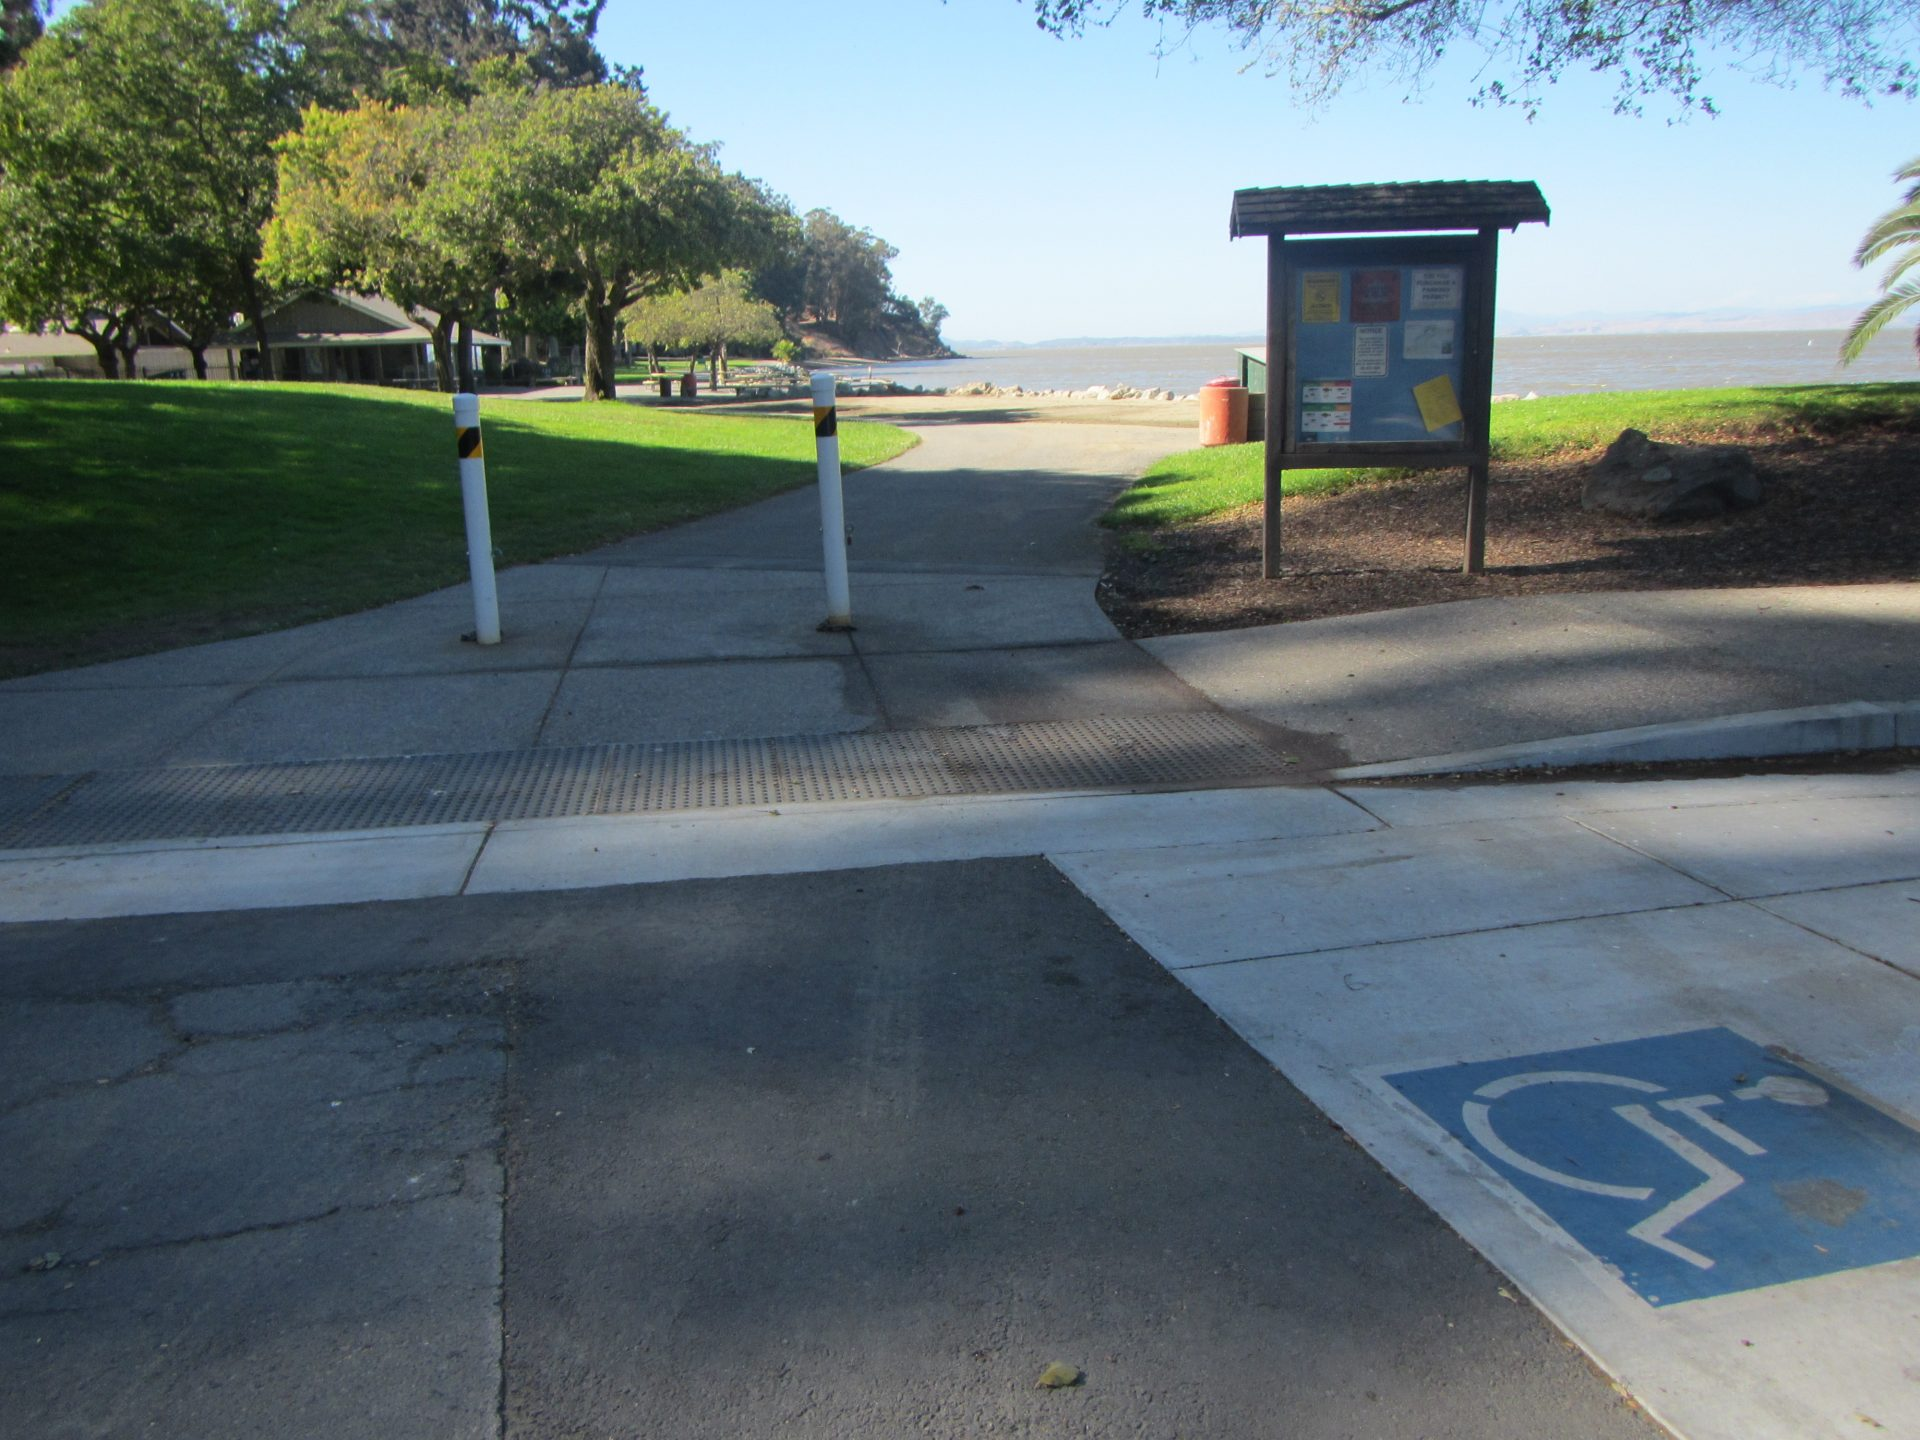 wheelchair-friendly curb cut with access to wide paved walkway